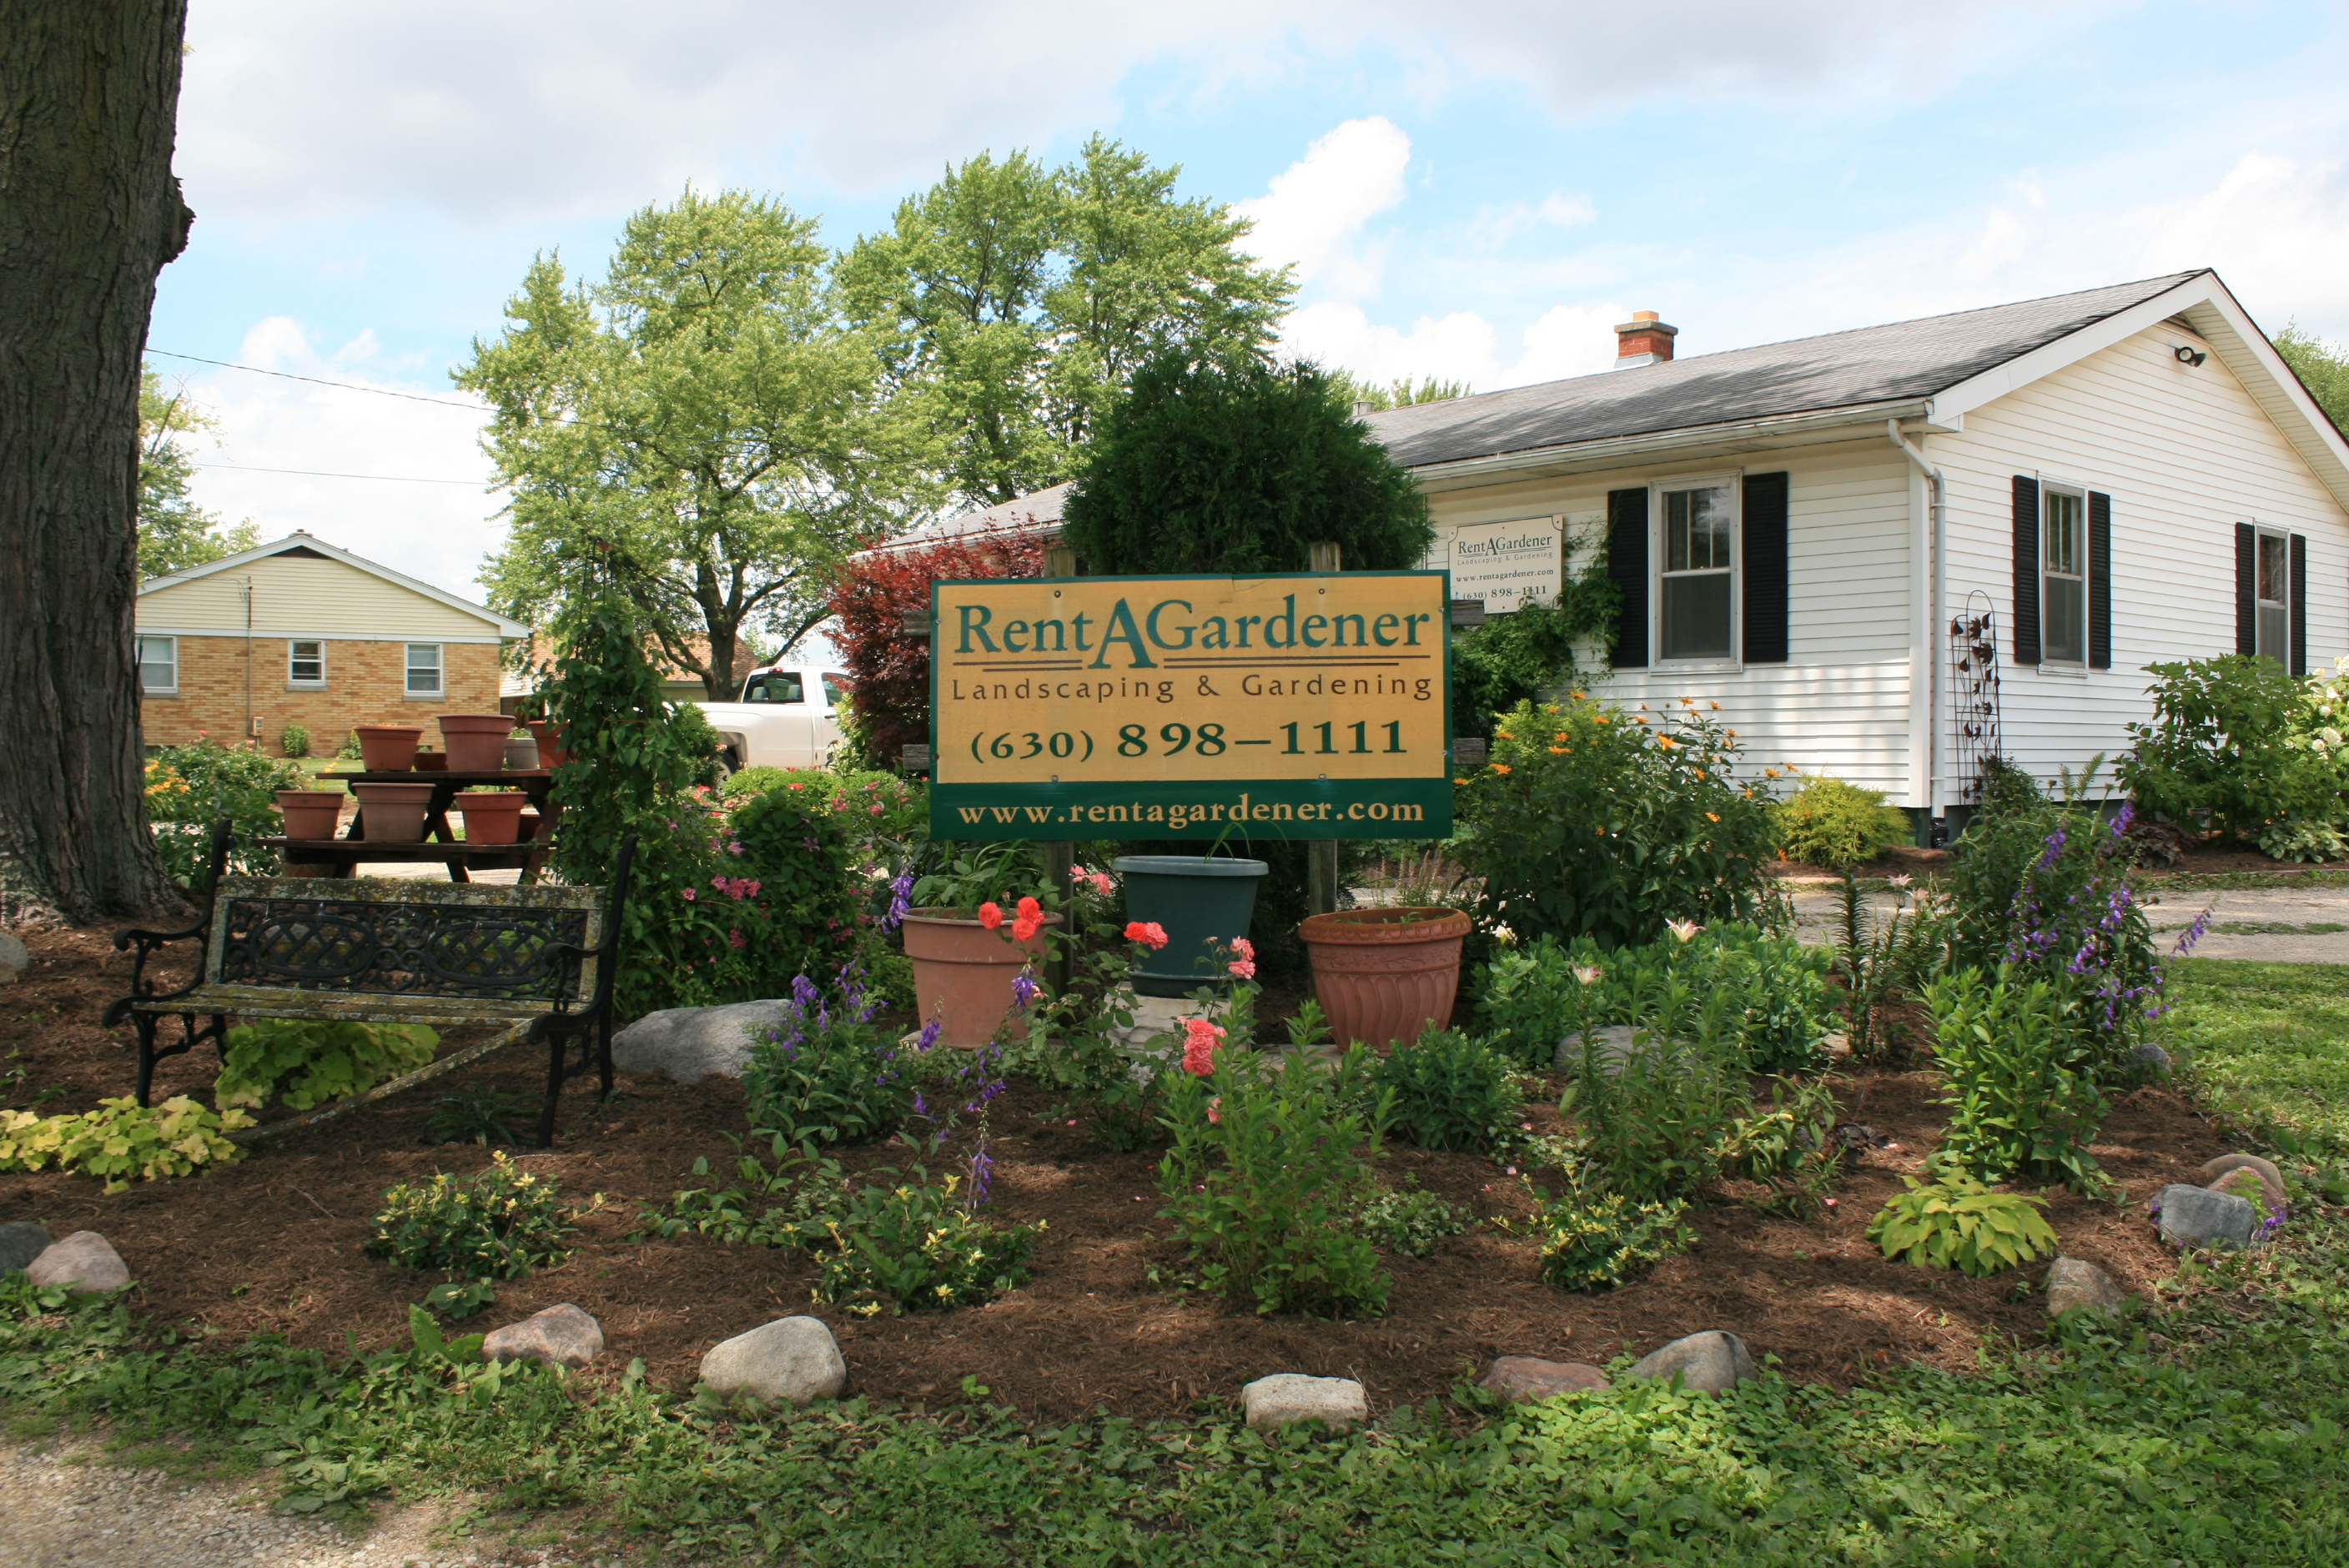 Rent A Gardener, Inc. image 0